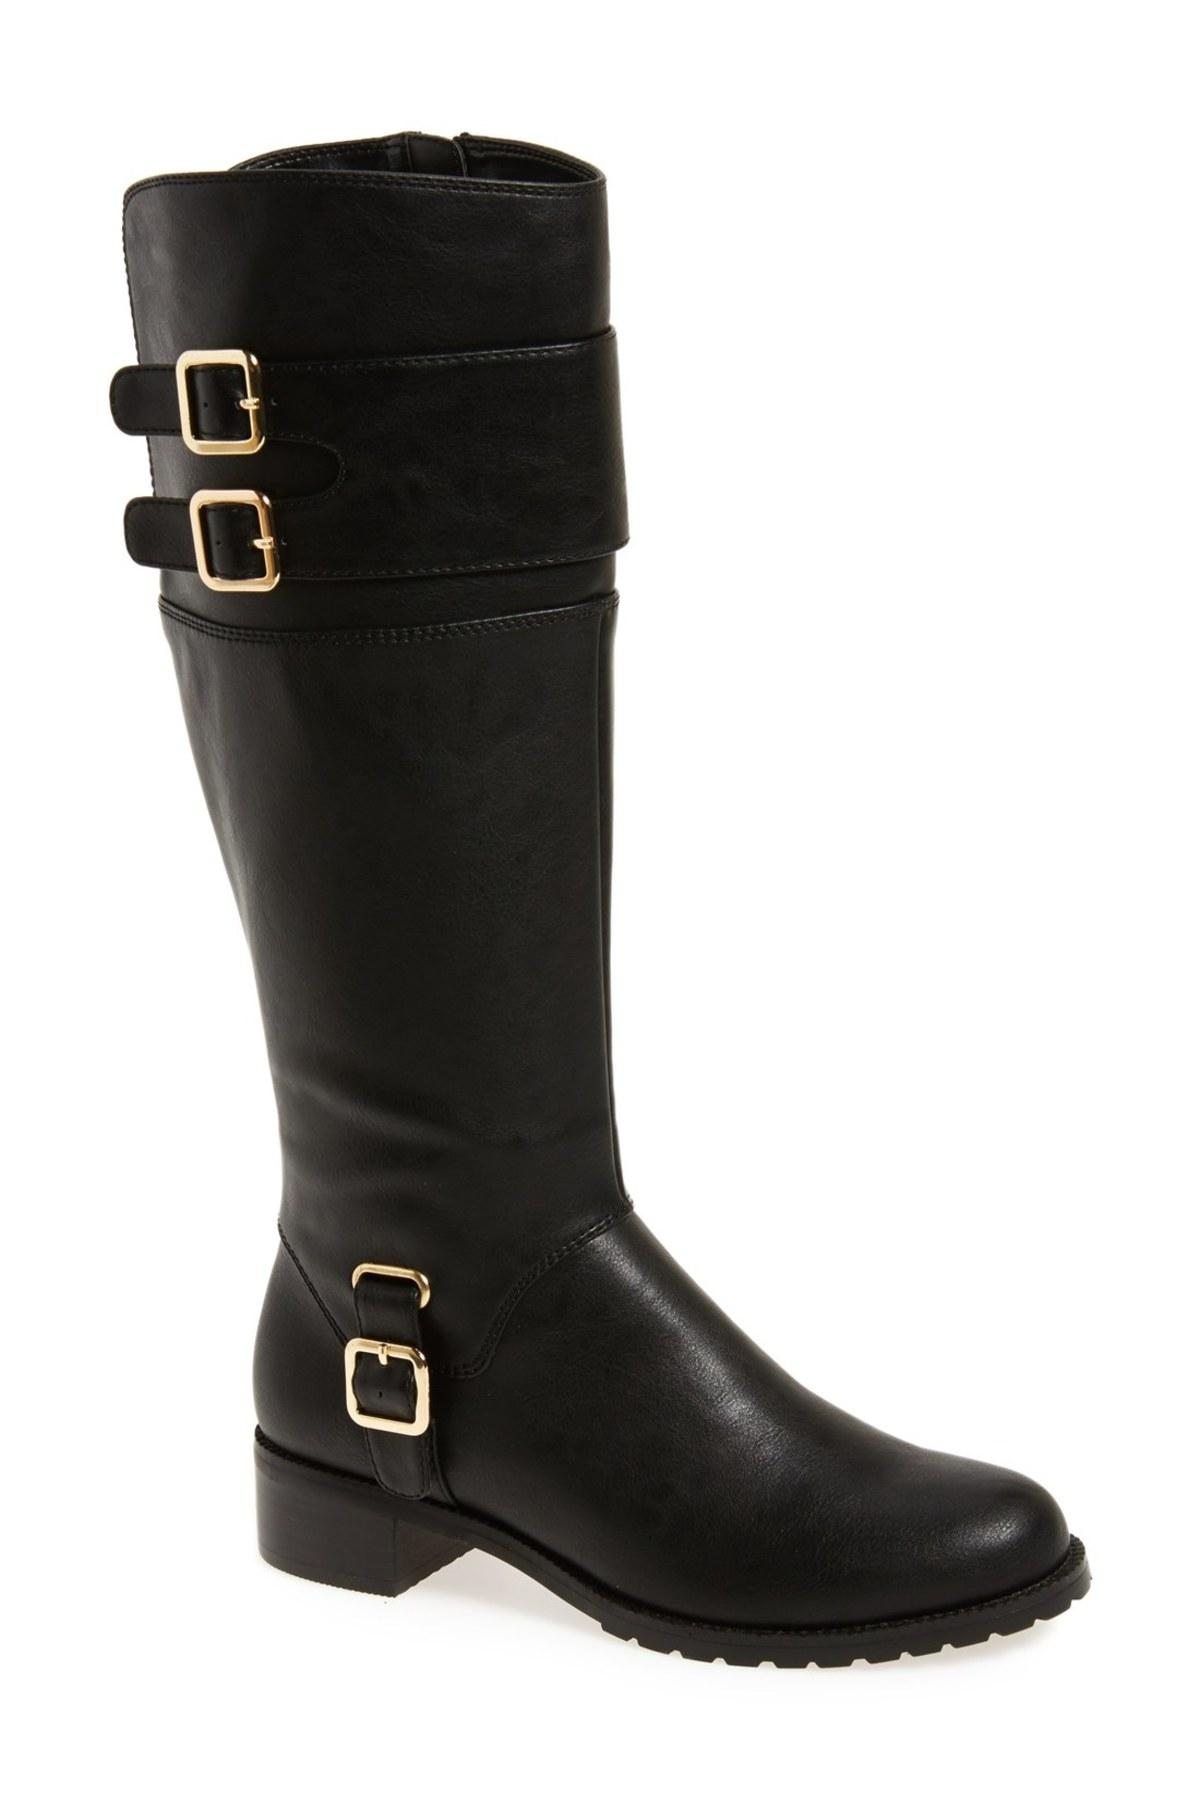 bella vita 39 adriann ii 39 riding boot in black lyst. Black Bedroom Furniture Sets. Home Design Ideas